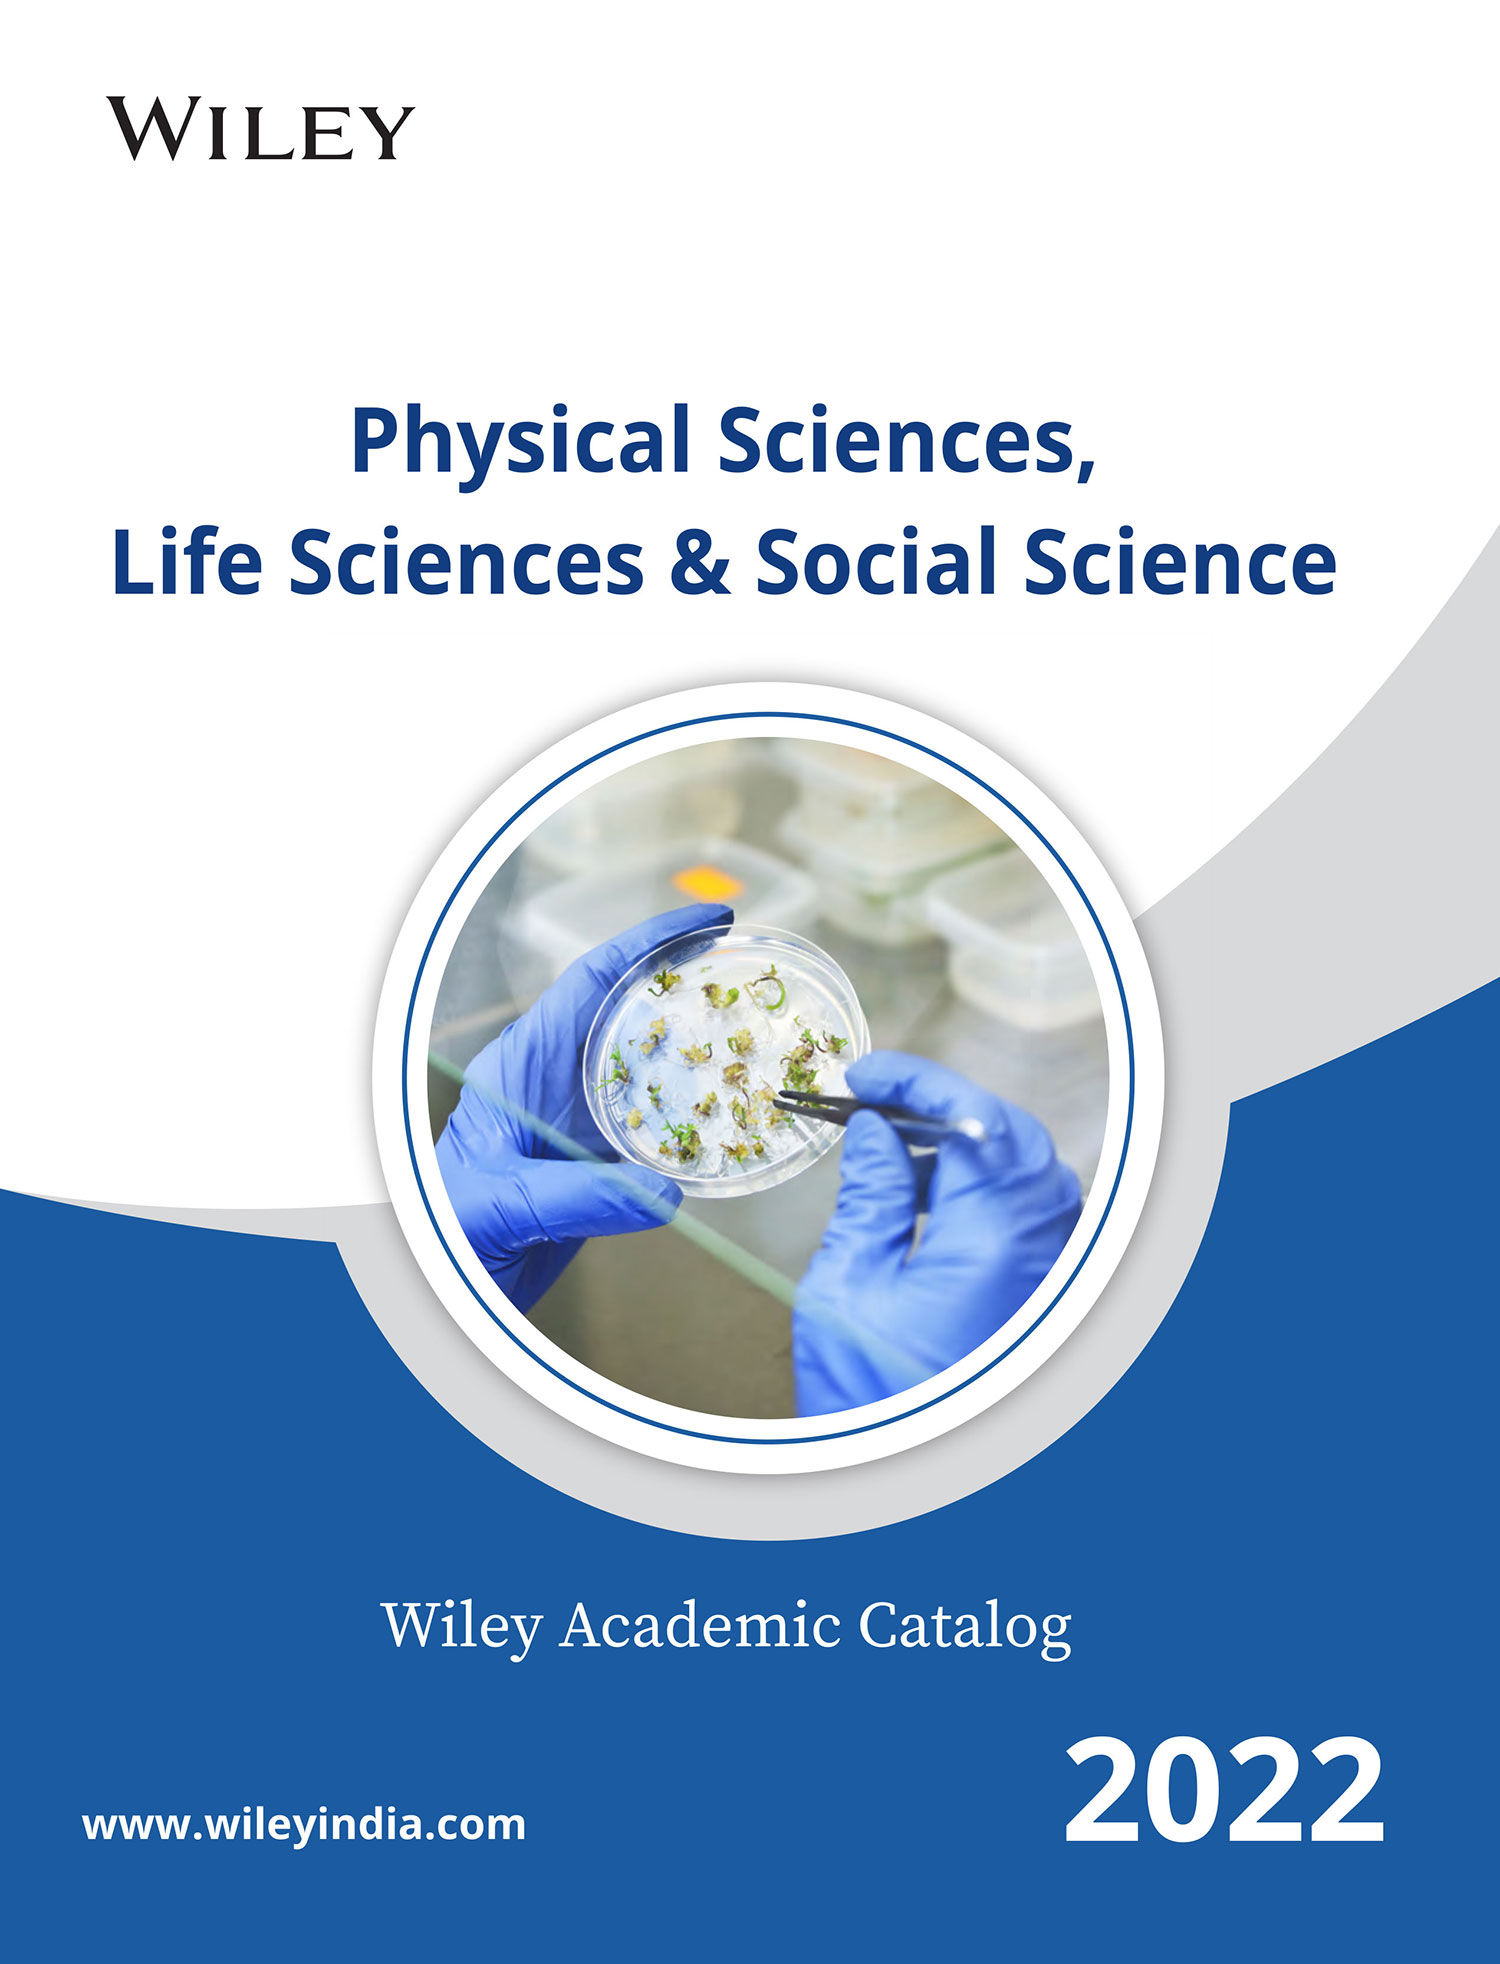 Wiley Physical Sciences Catalog 2021